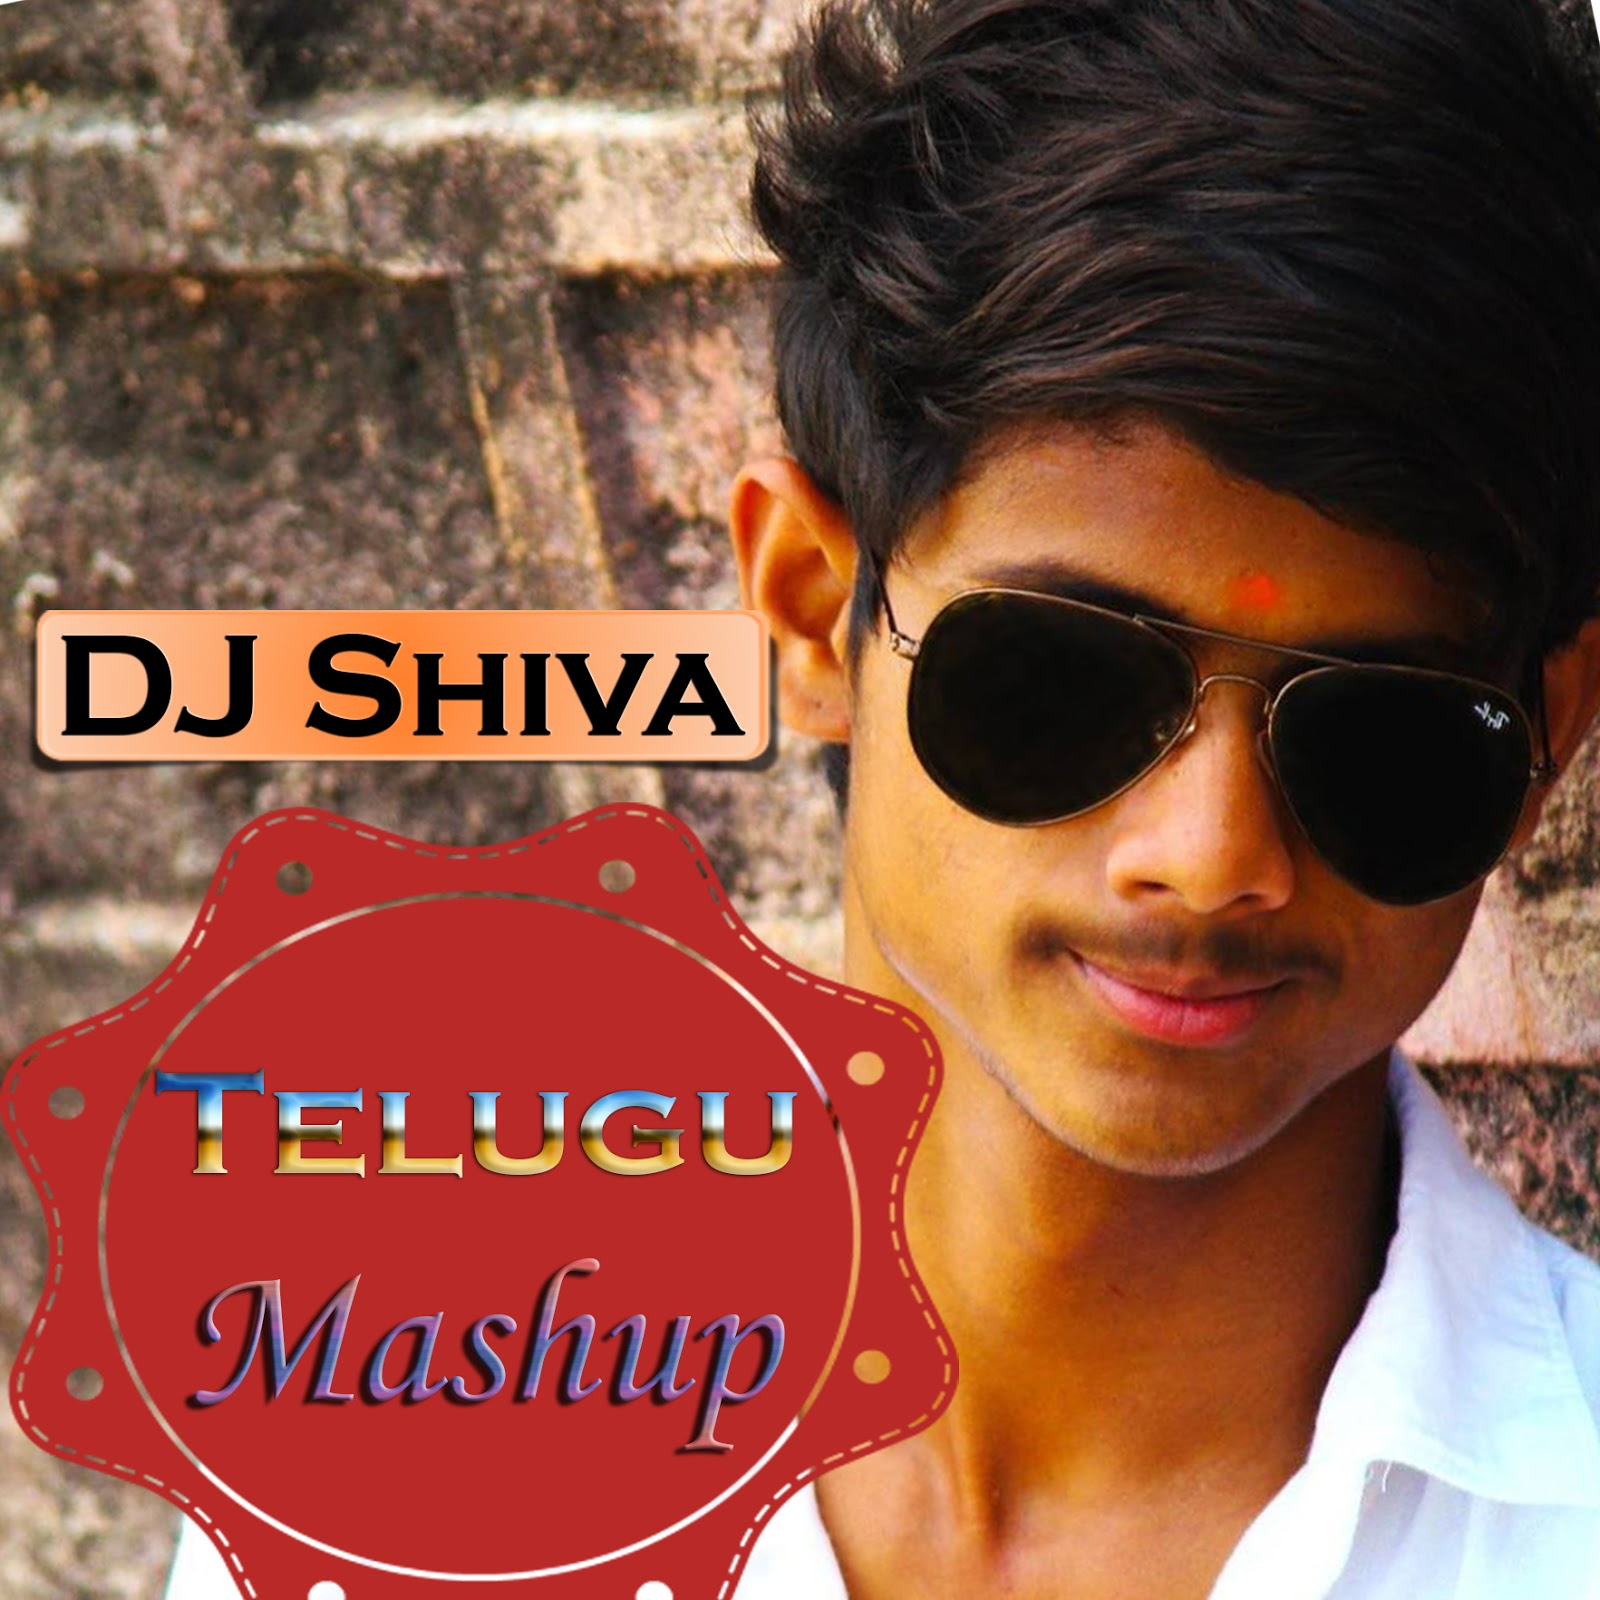 Best Love Mashup Song Download It: Telugu Mashup Mix DJ Shiva From Balanagar Tollywood Mashup